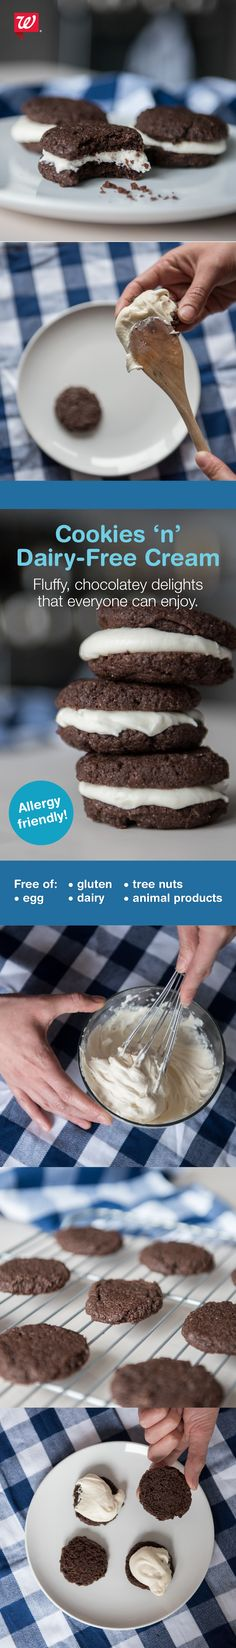 Make your favorite chocolate and frosting cookie at home! (Plus—it's dairy and gluten free!)